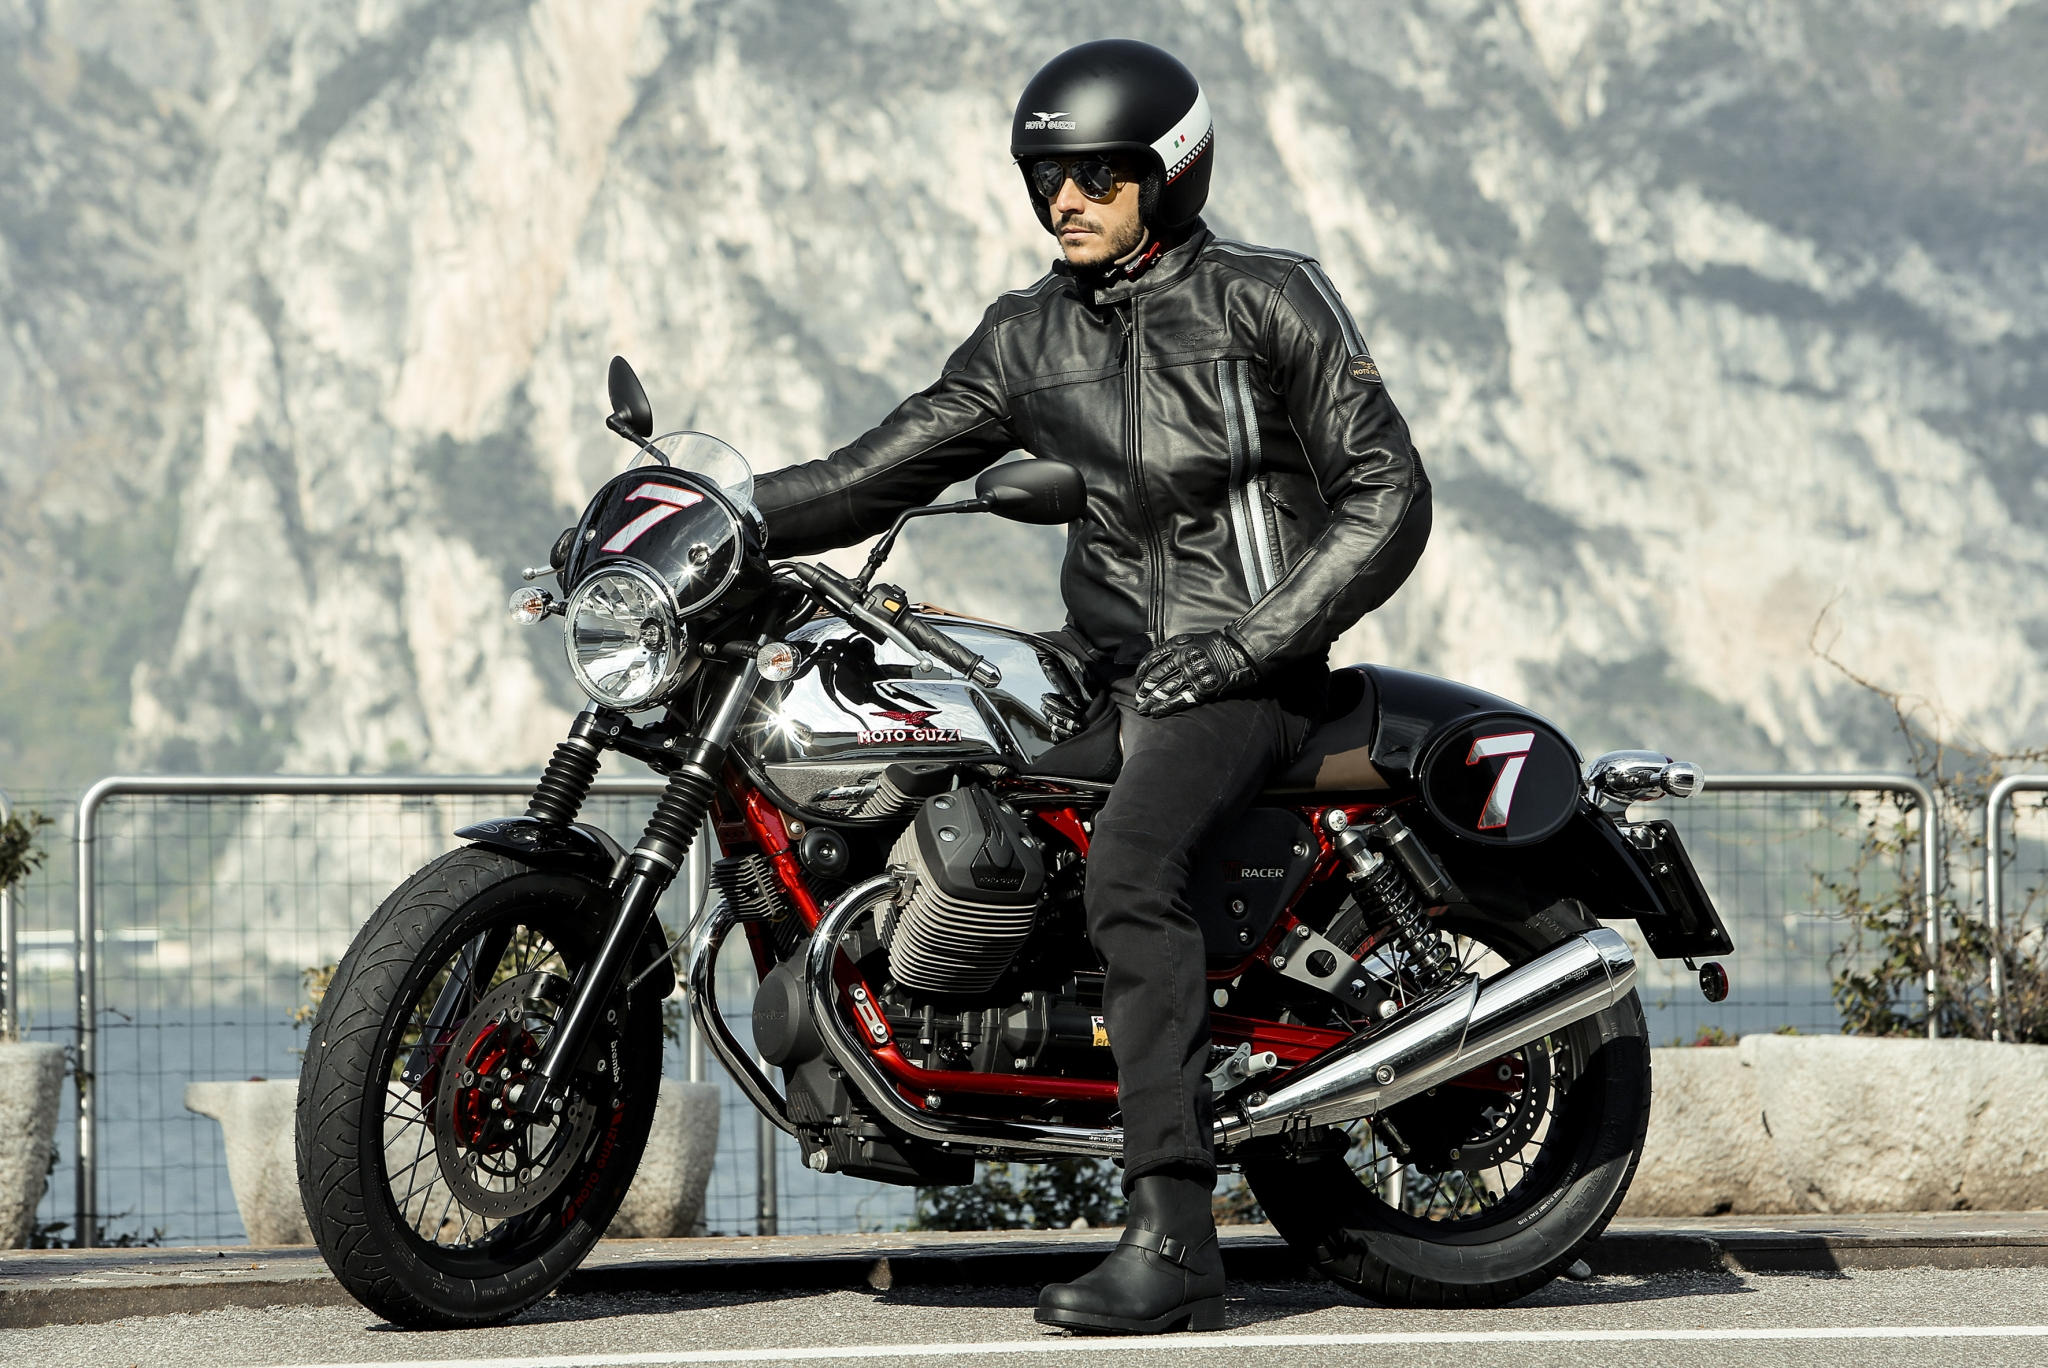 Hi Res Photos Of The New Moto Guzzi V7 Bikes Released